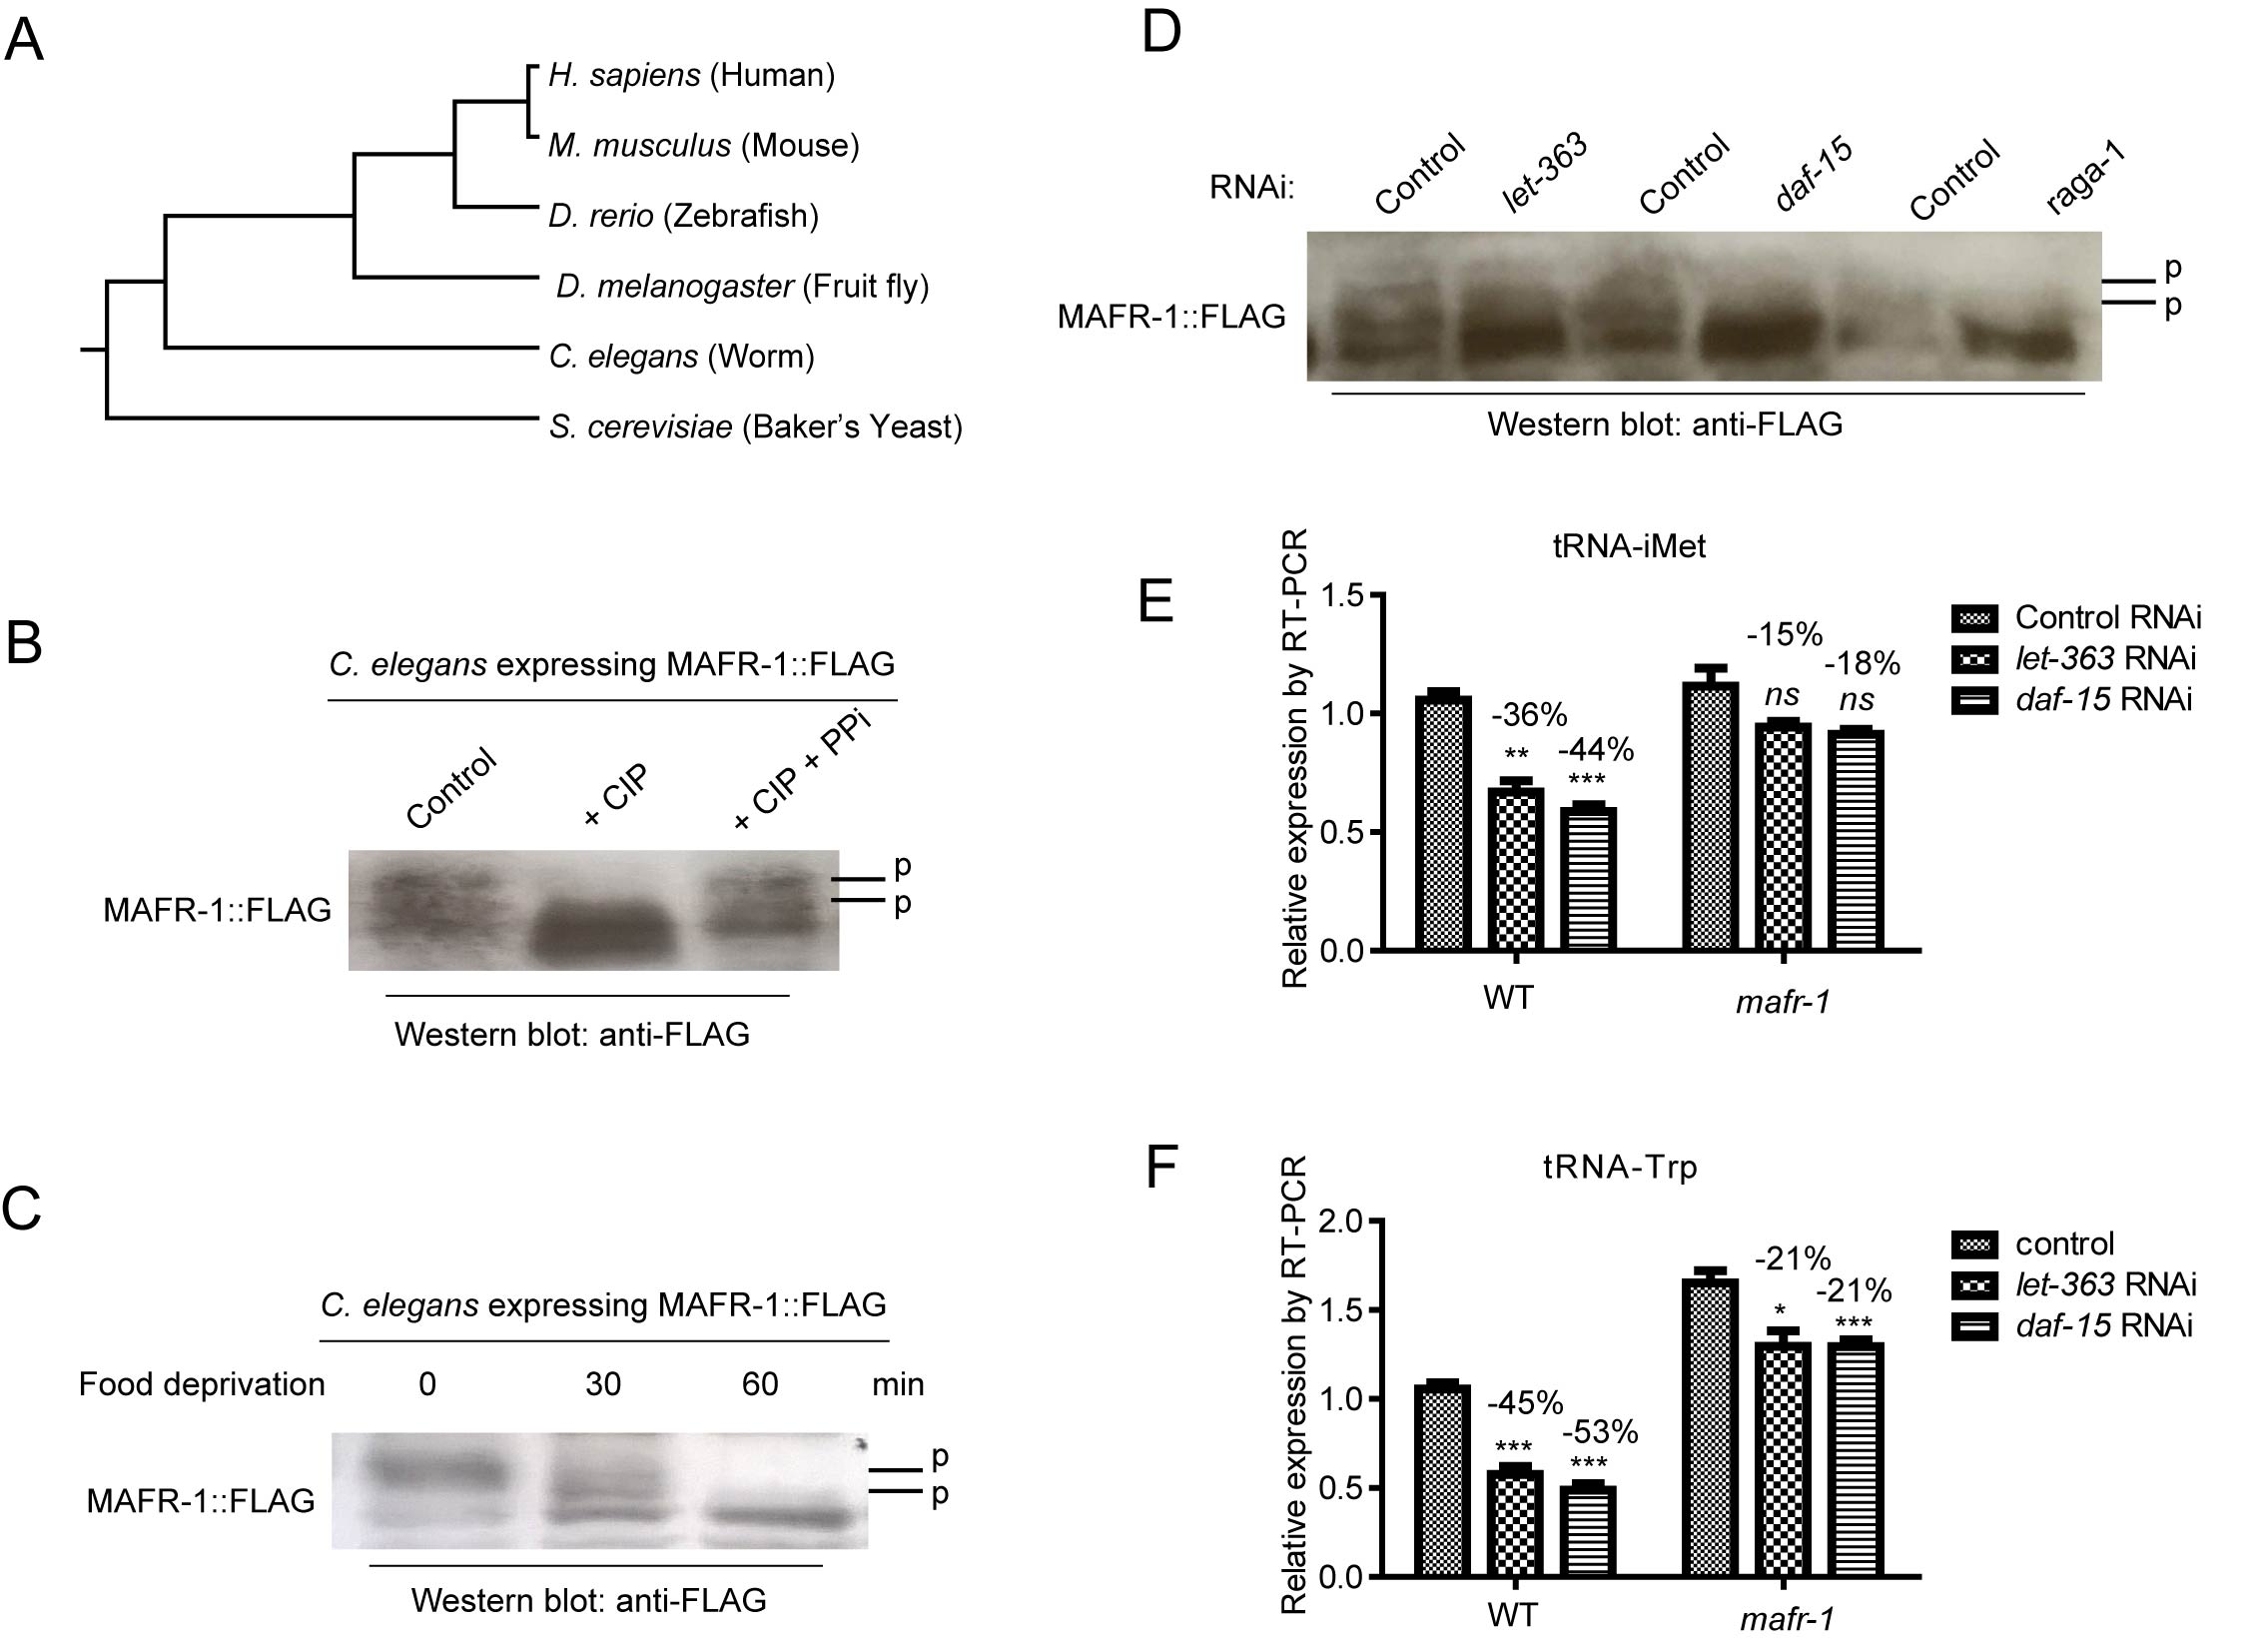 MAFR-1 is conserved and regulated similarly by mTOR pathway.